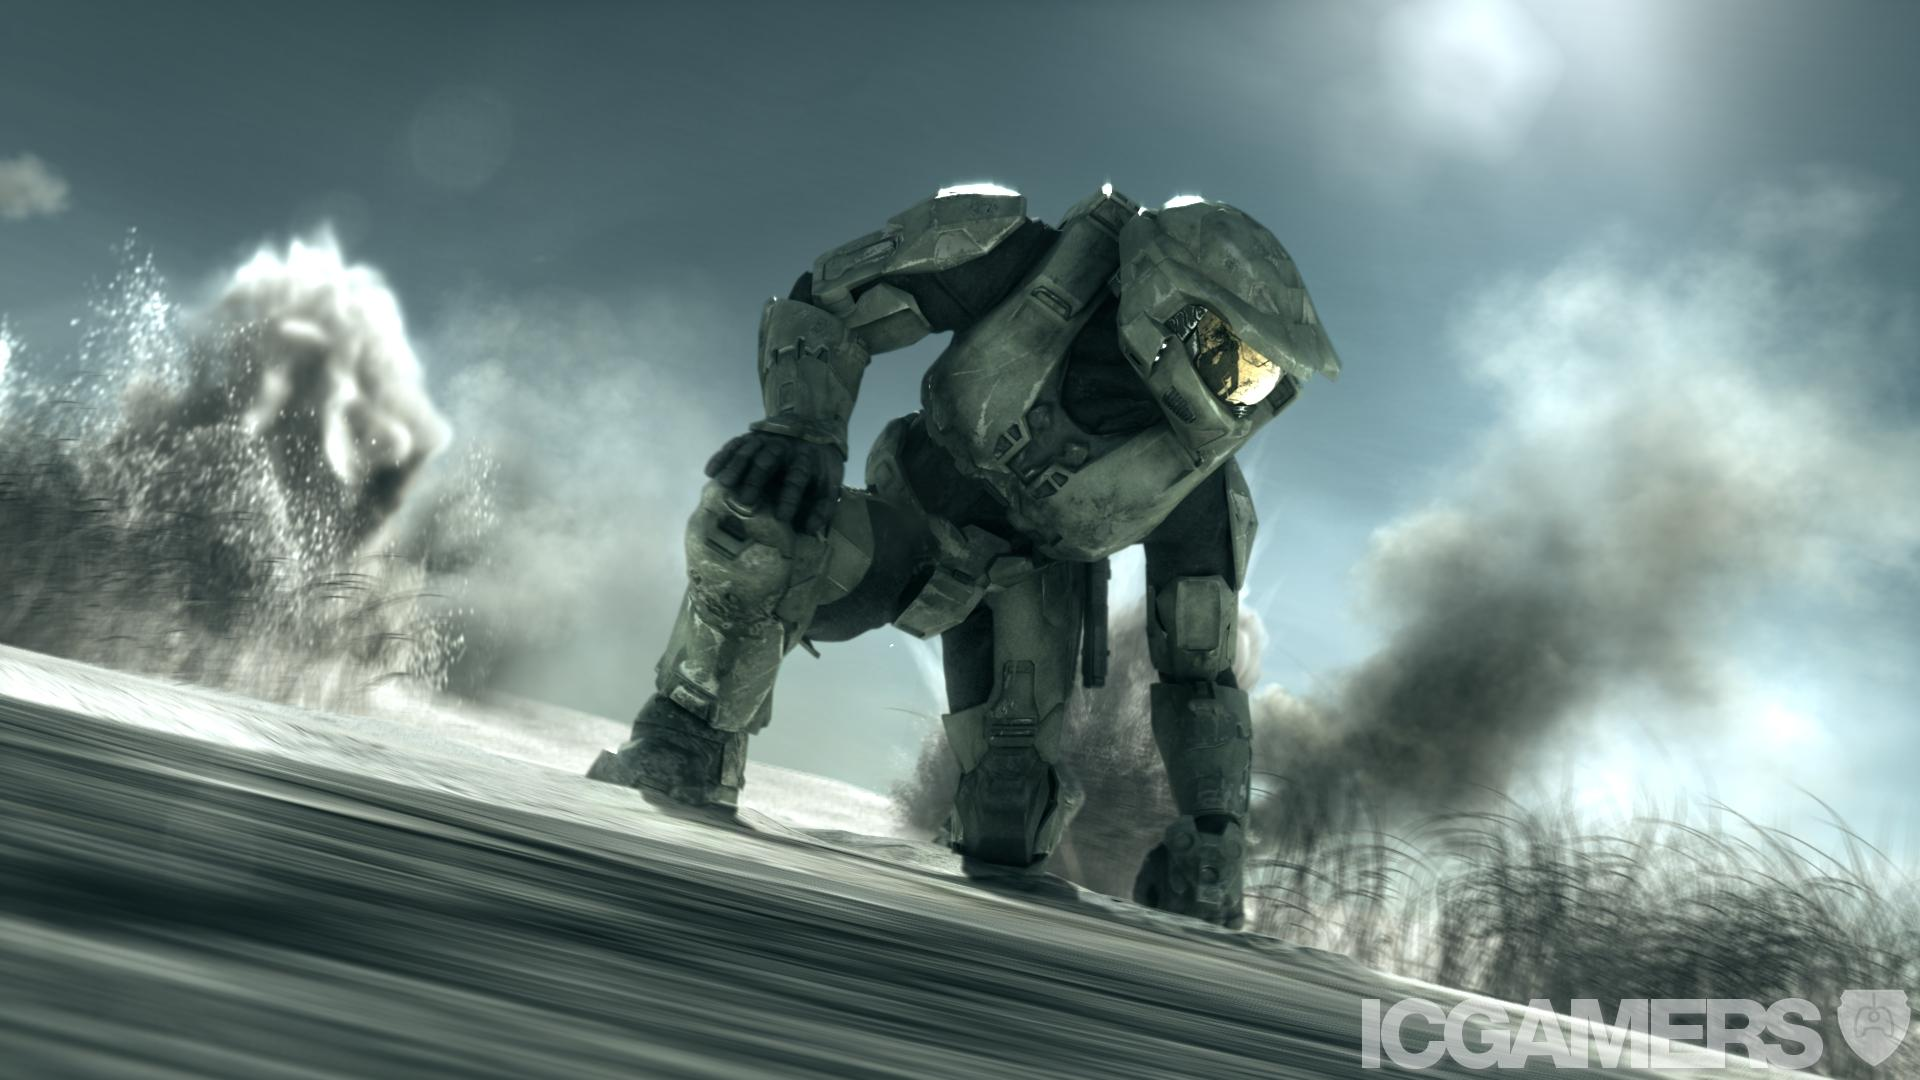 Halo Wallpaper : Hd Wallpapers High Definition Quality Desktop .